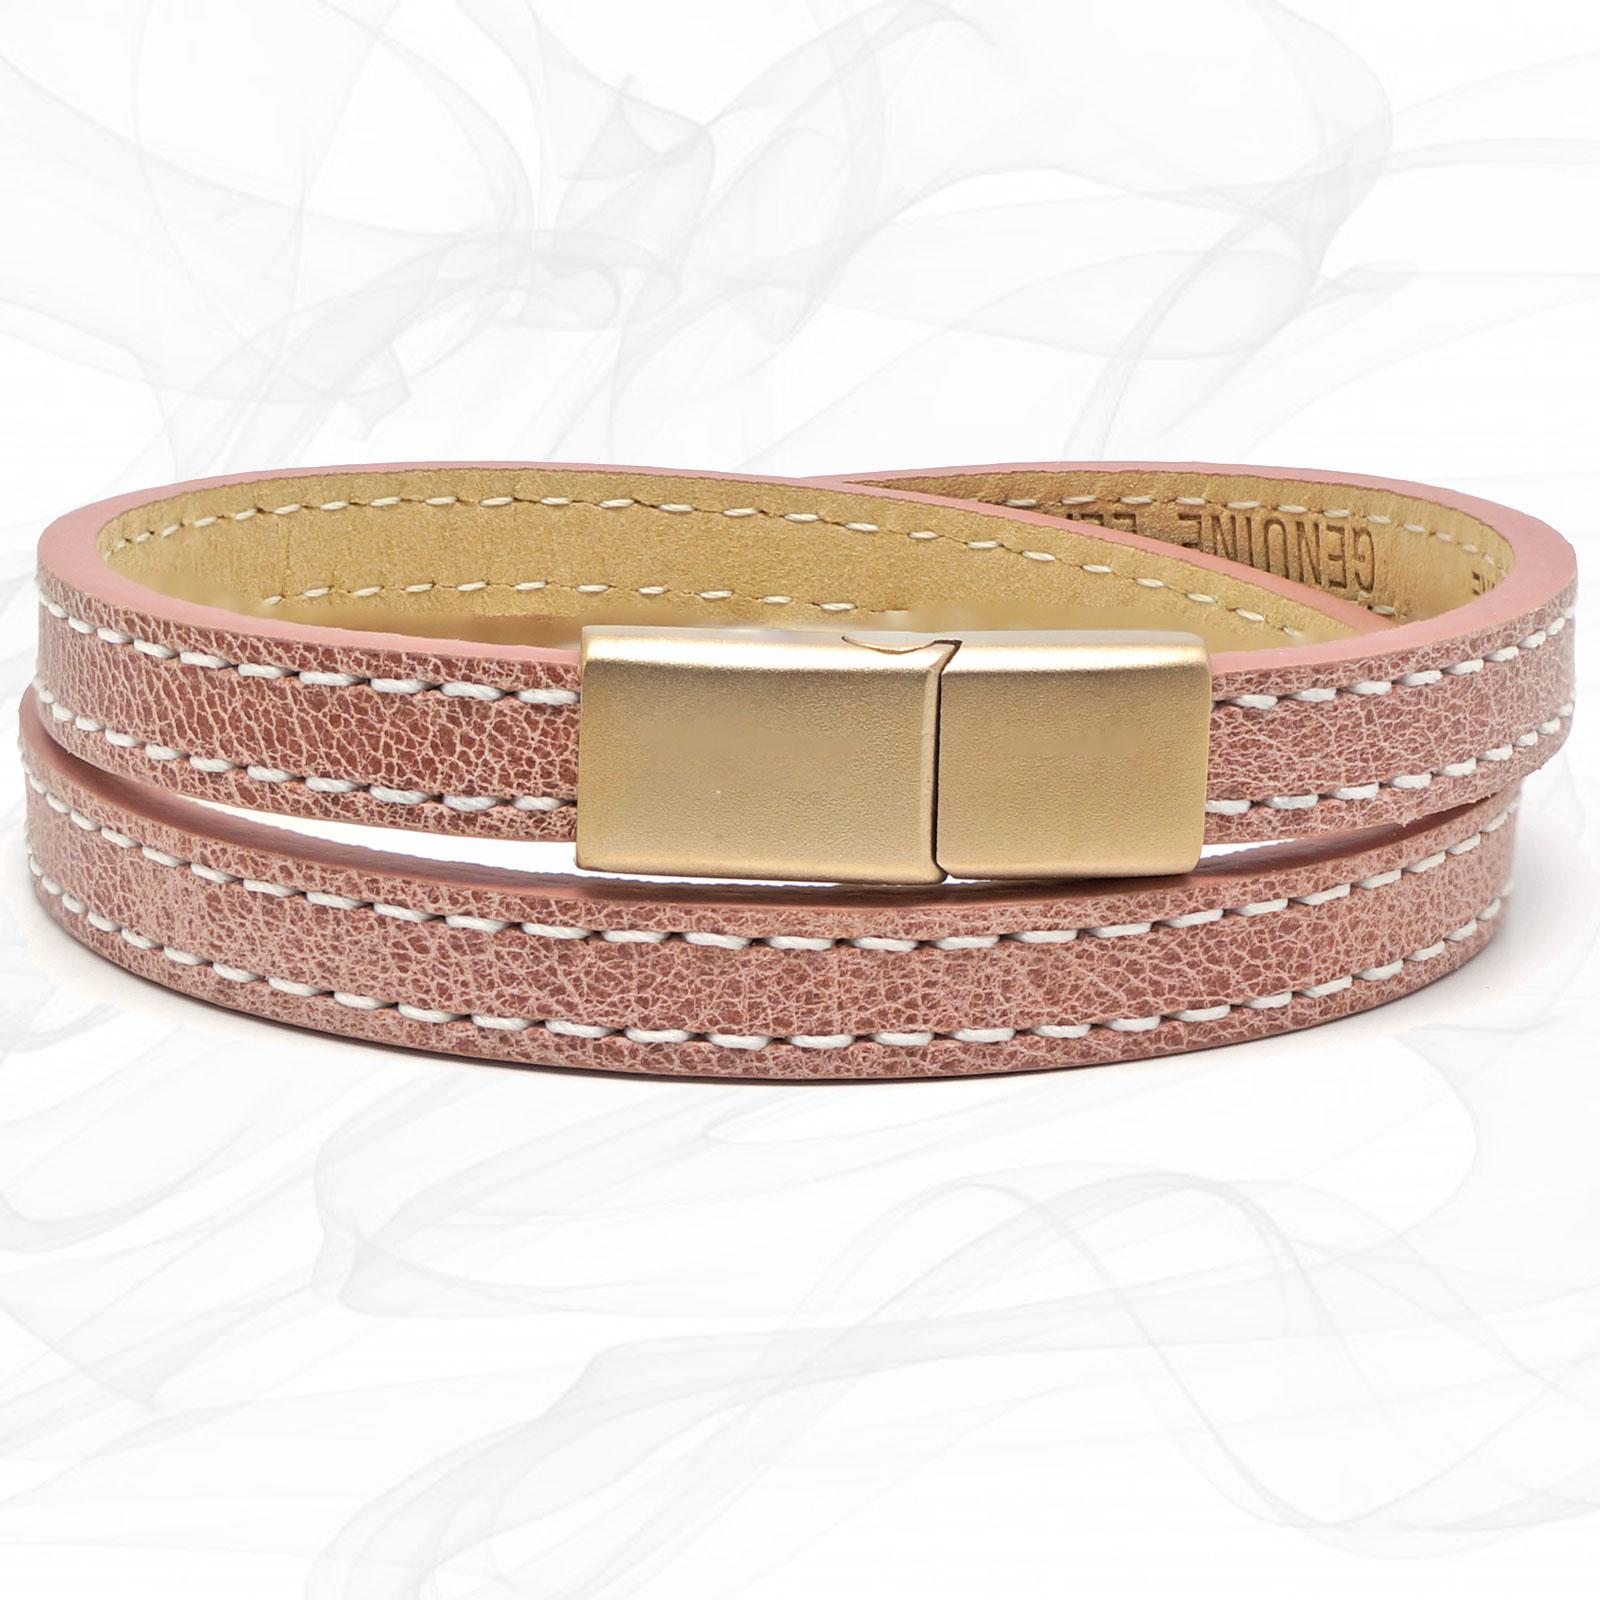 Girls lavender pink flat leather bracelet with a FROSTED Rose Gold Steel CLASP